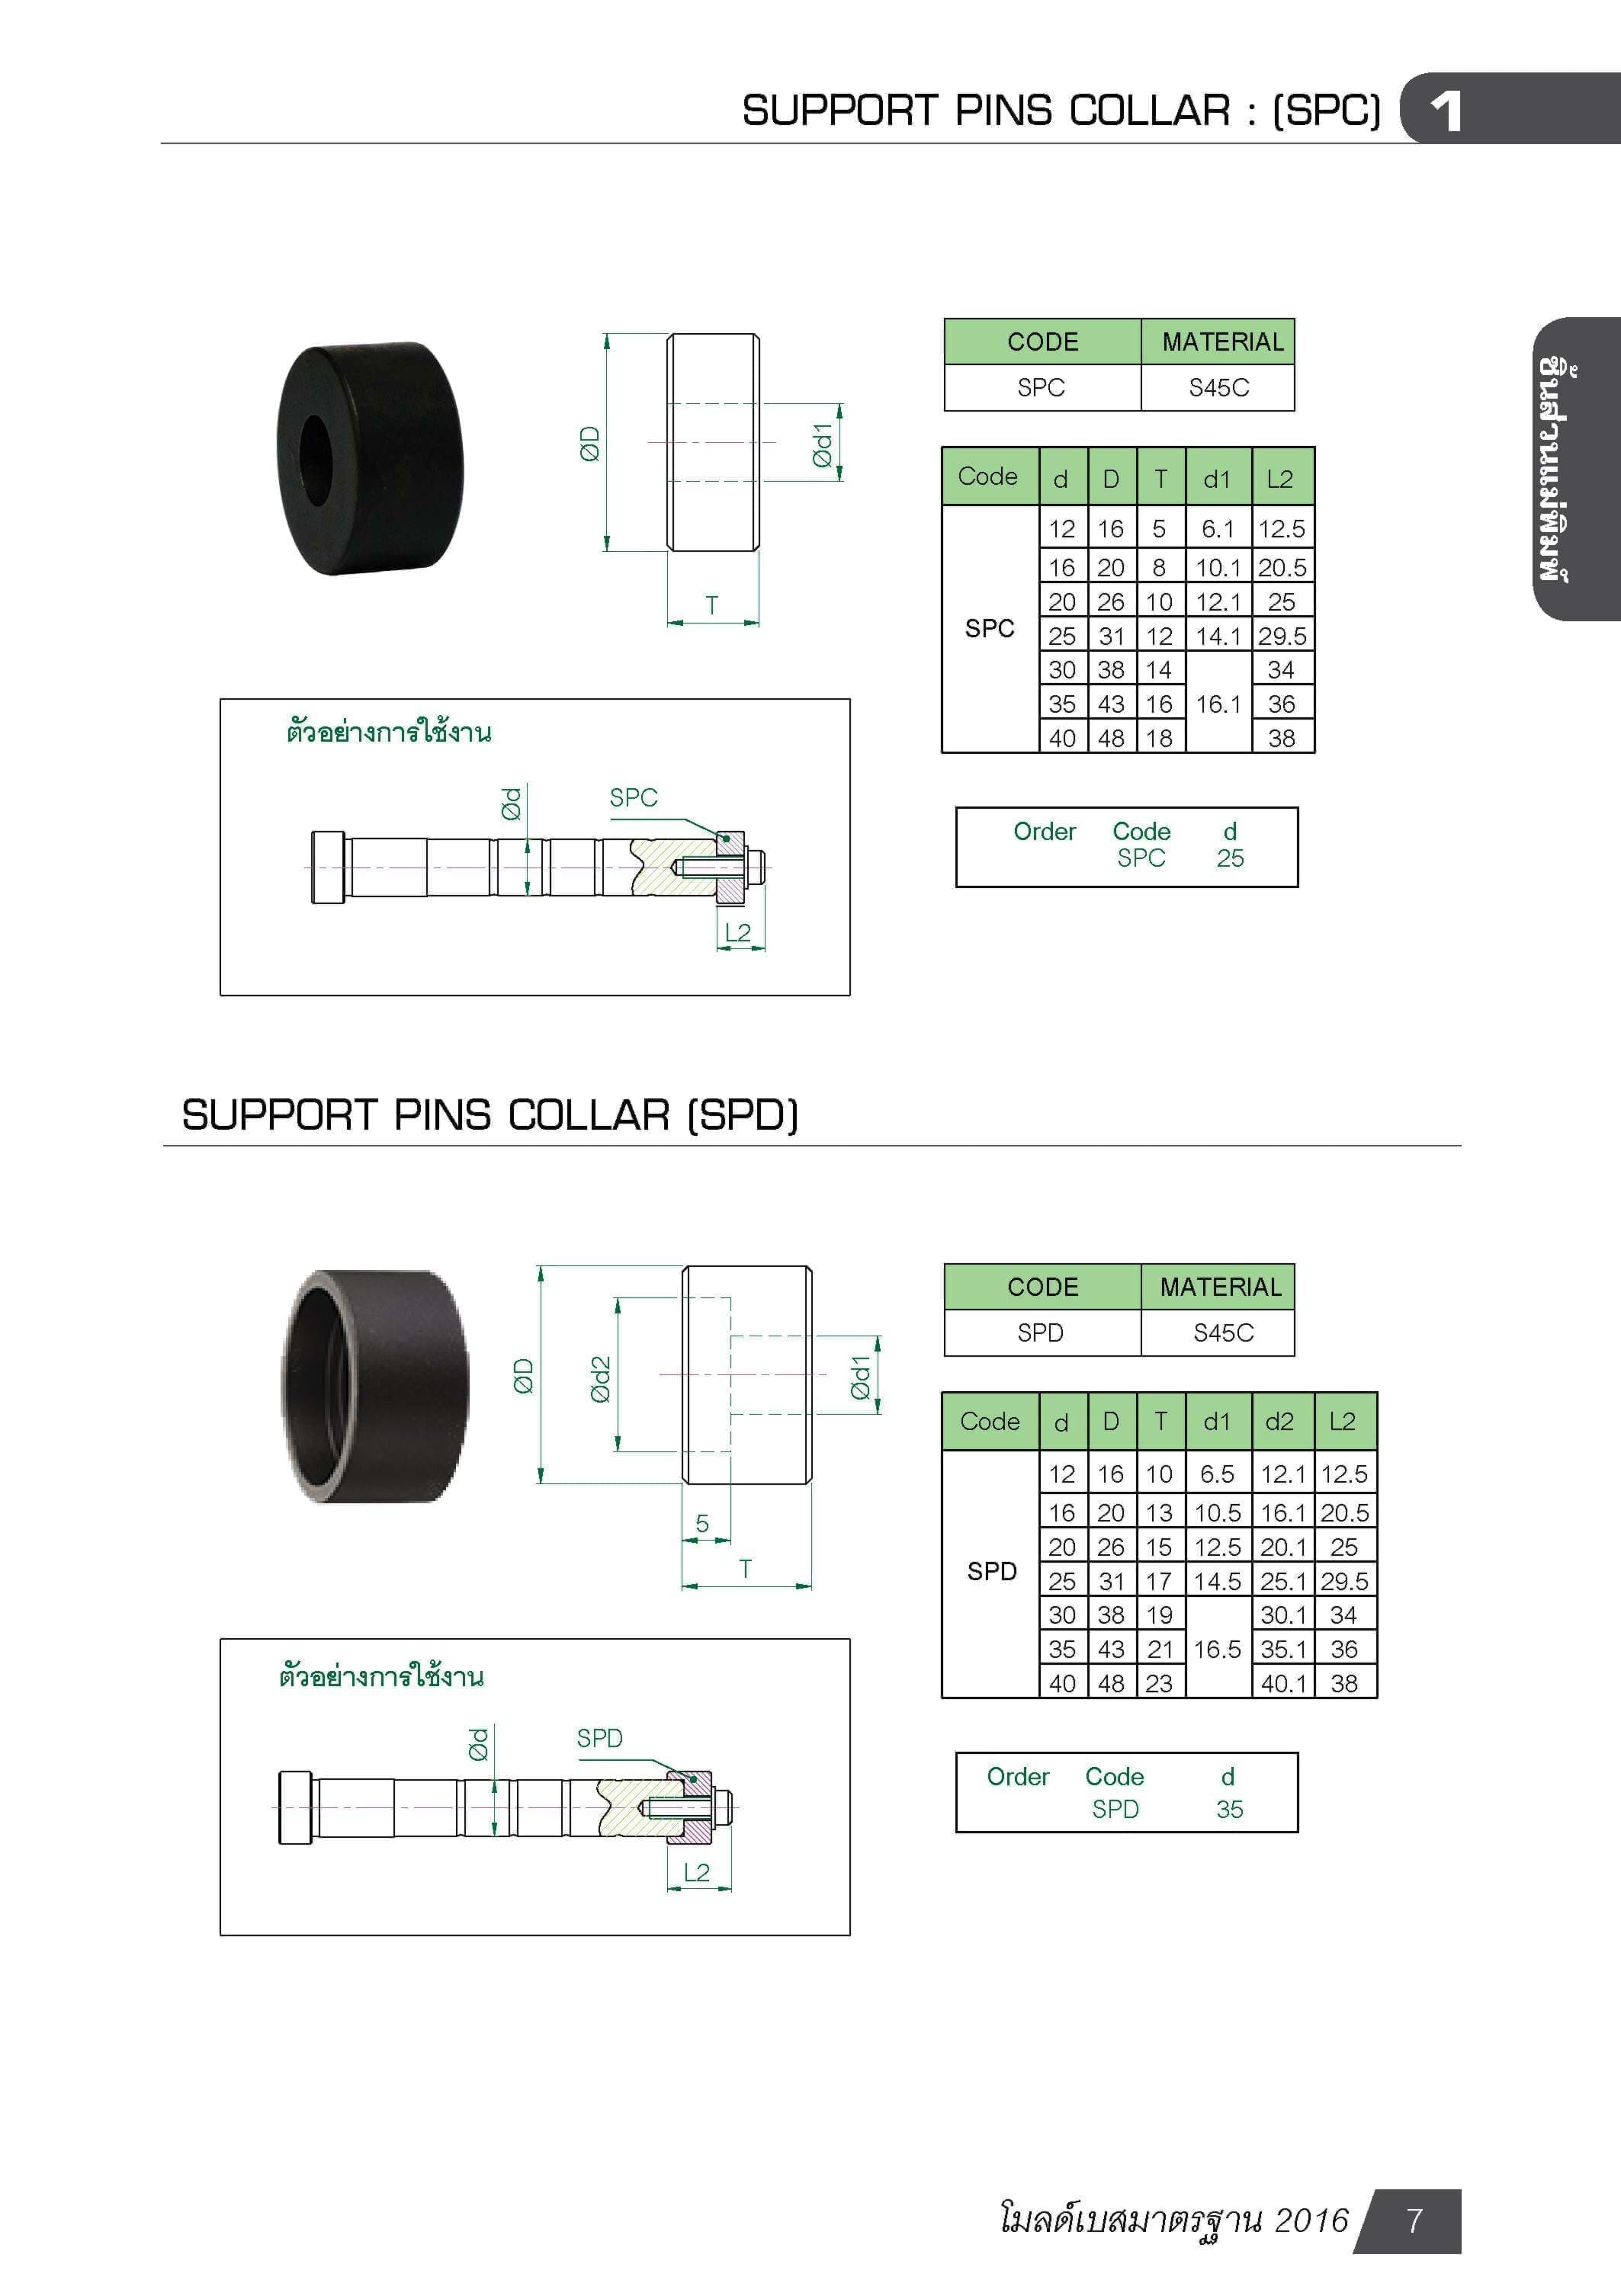 SUPPORT PINS COLLAR : (SPC) MB00701